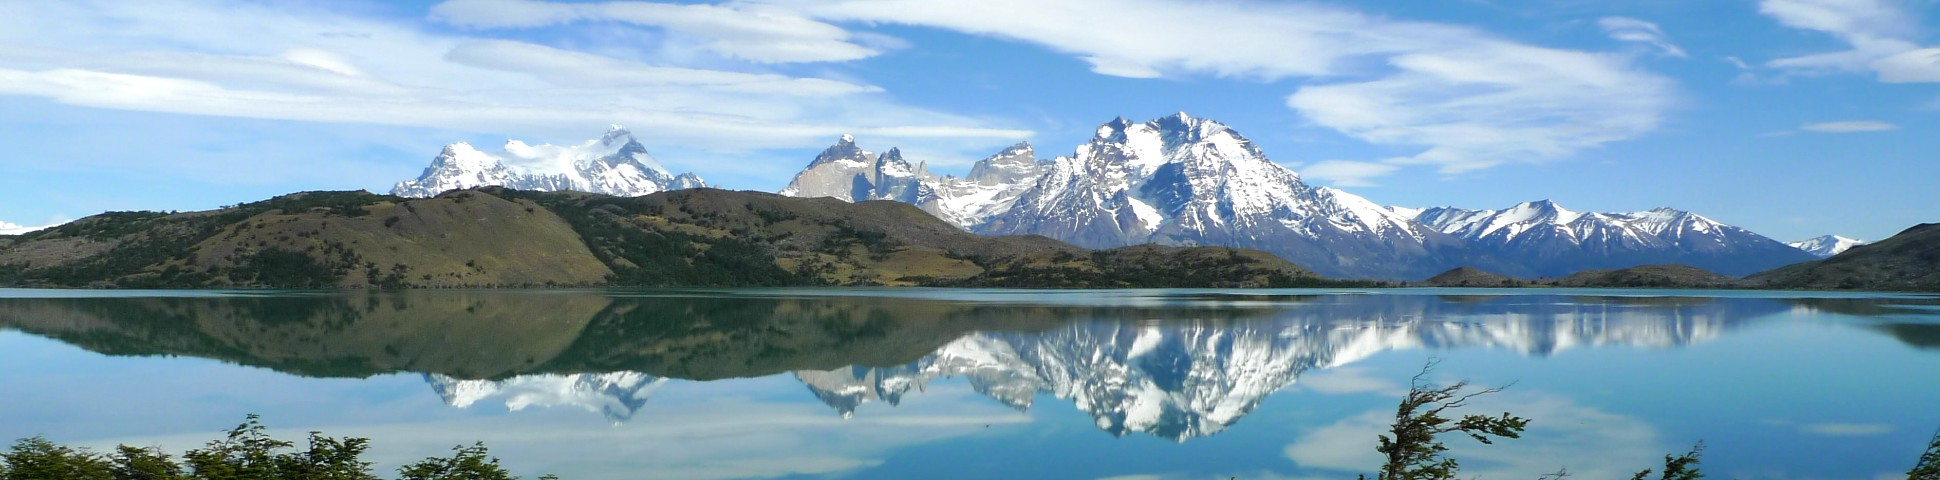 Patagonian mountains reflected in the water (Chile)